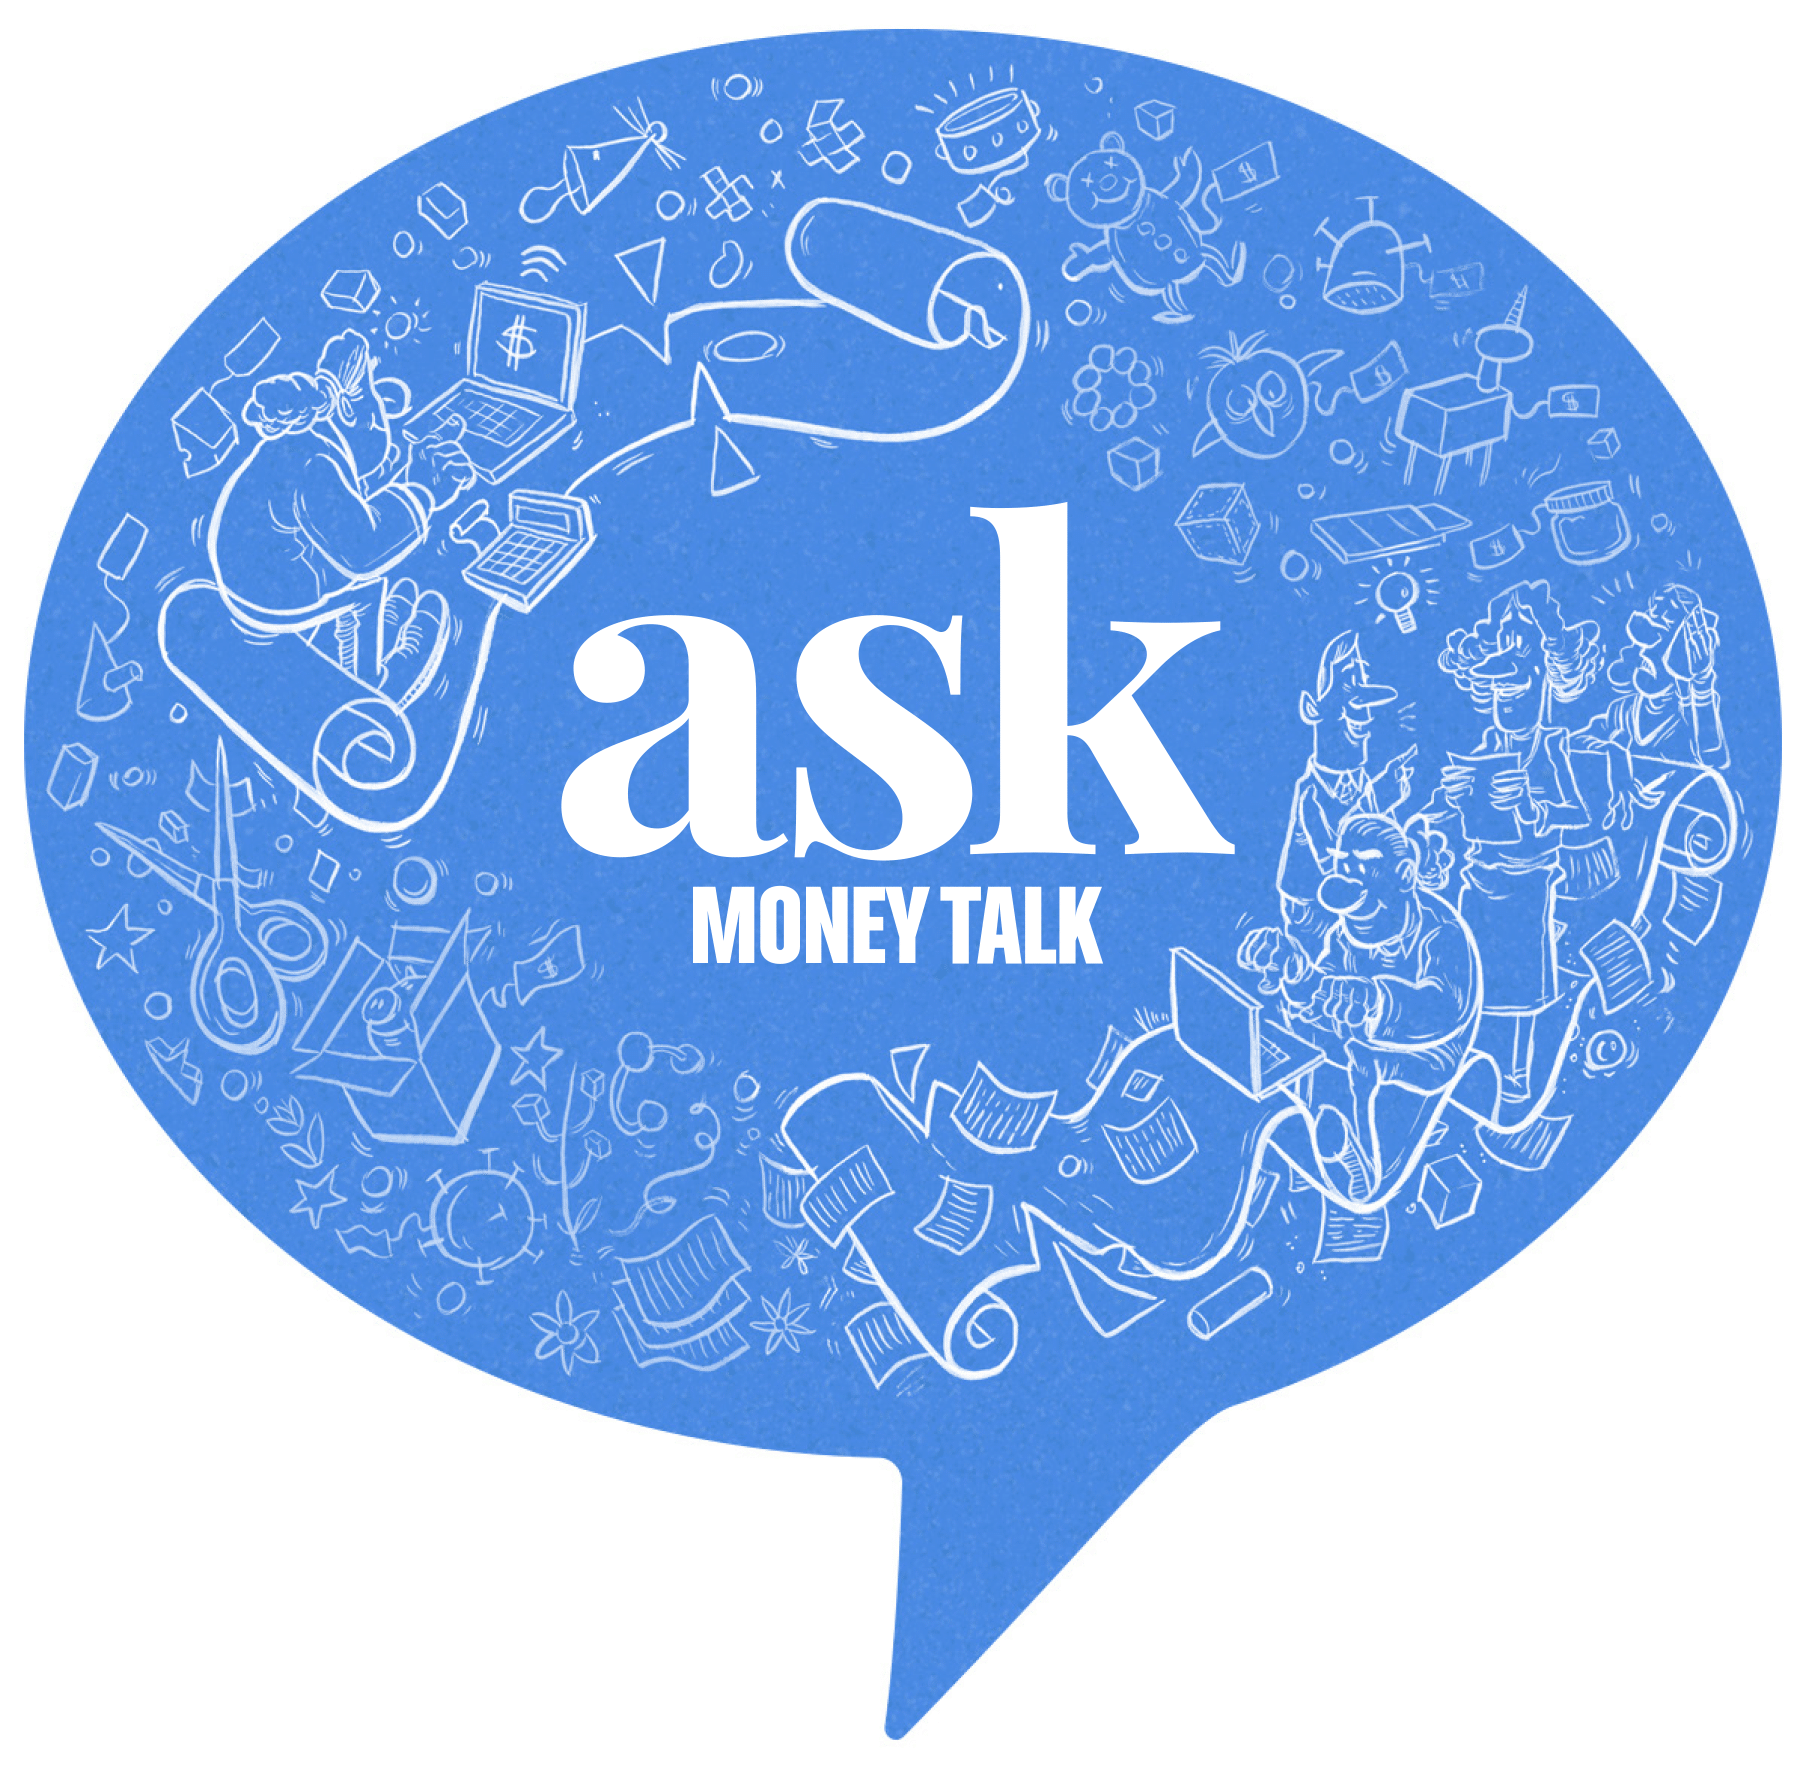 A image of the Ask MoneyTalk logo with images of people working in small businesses